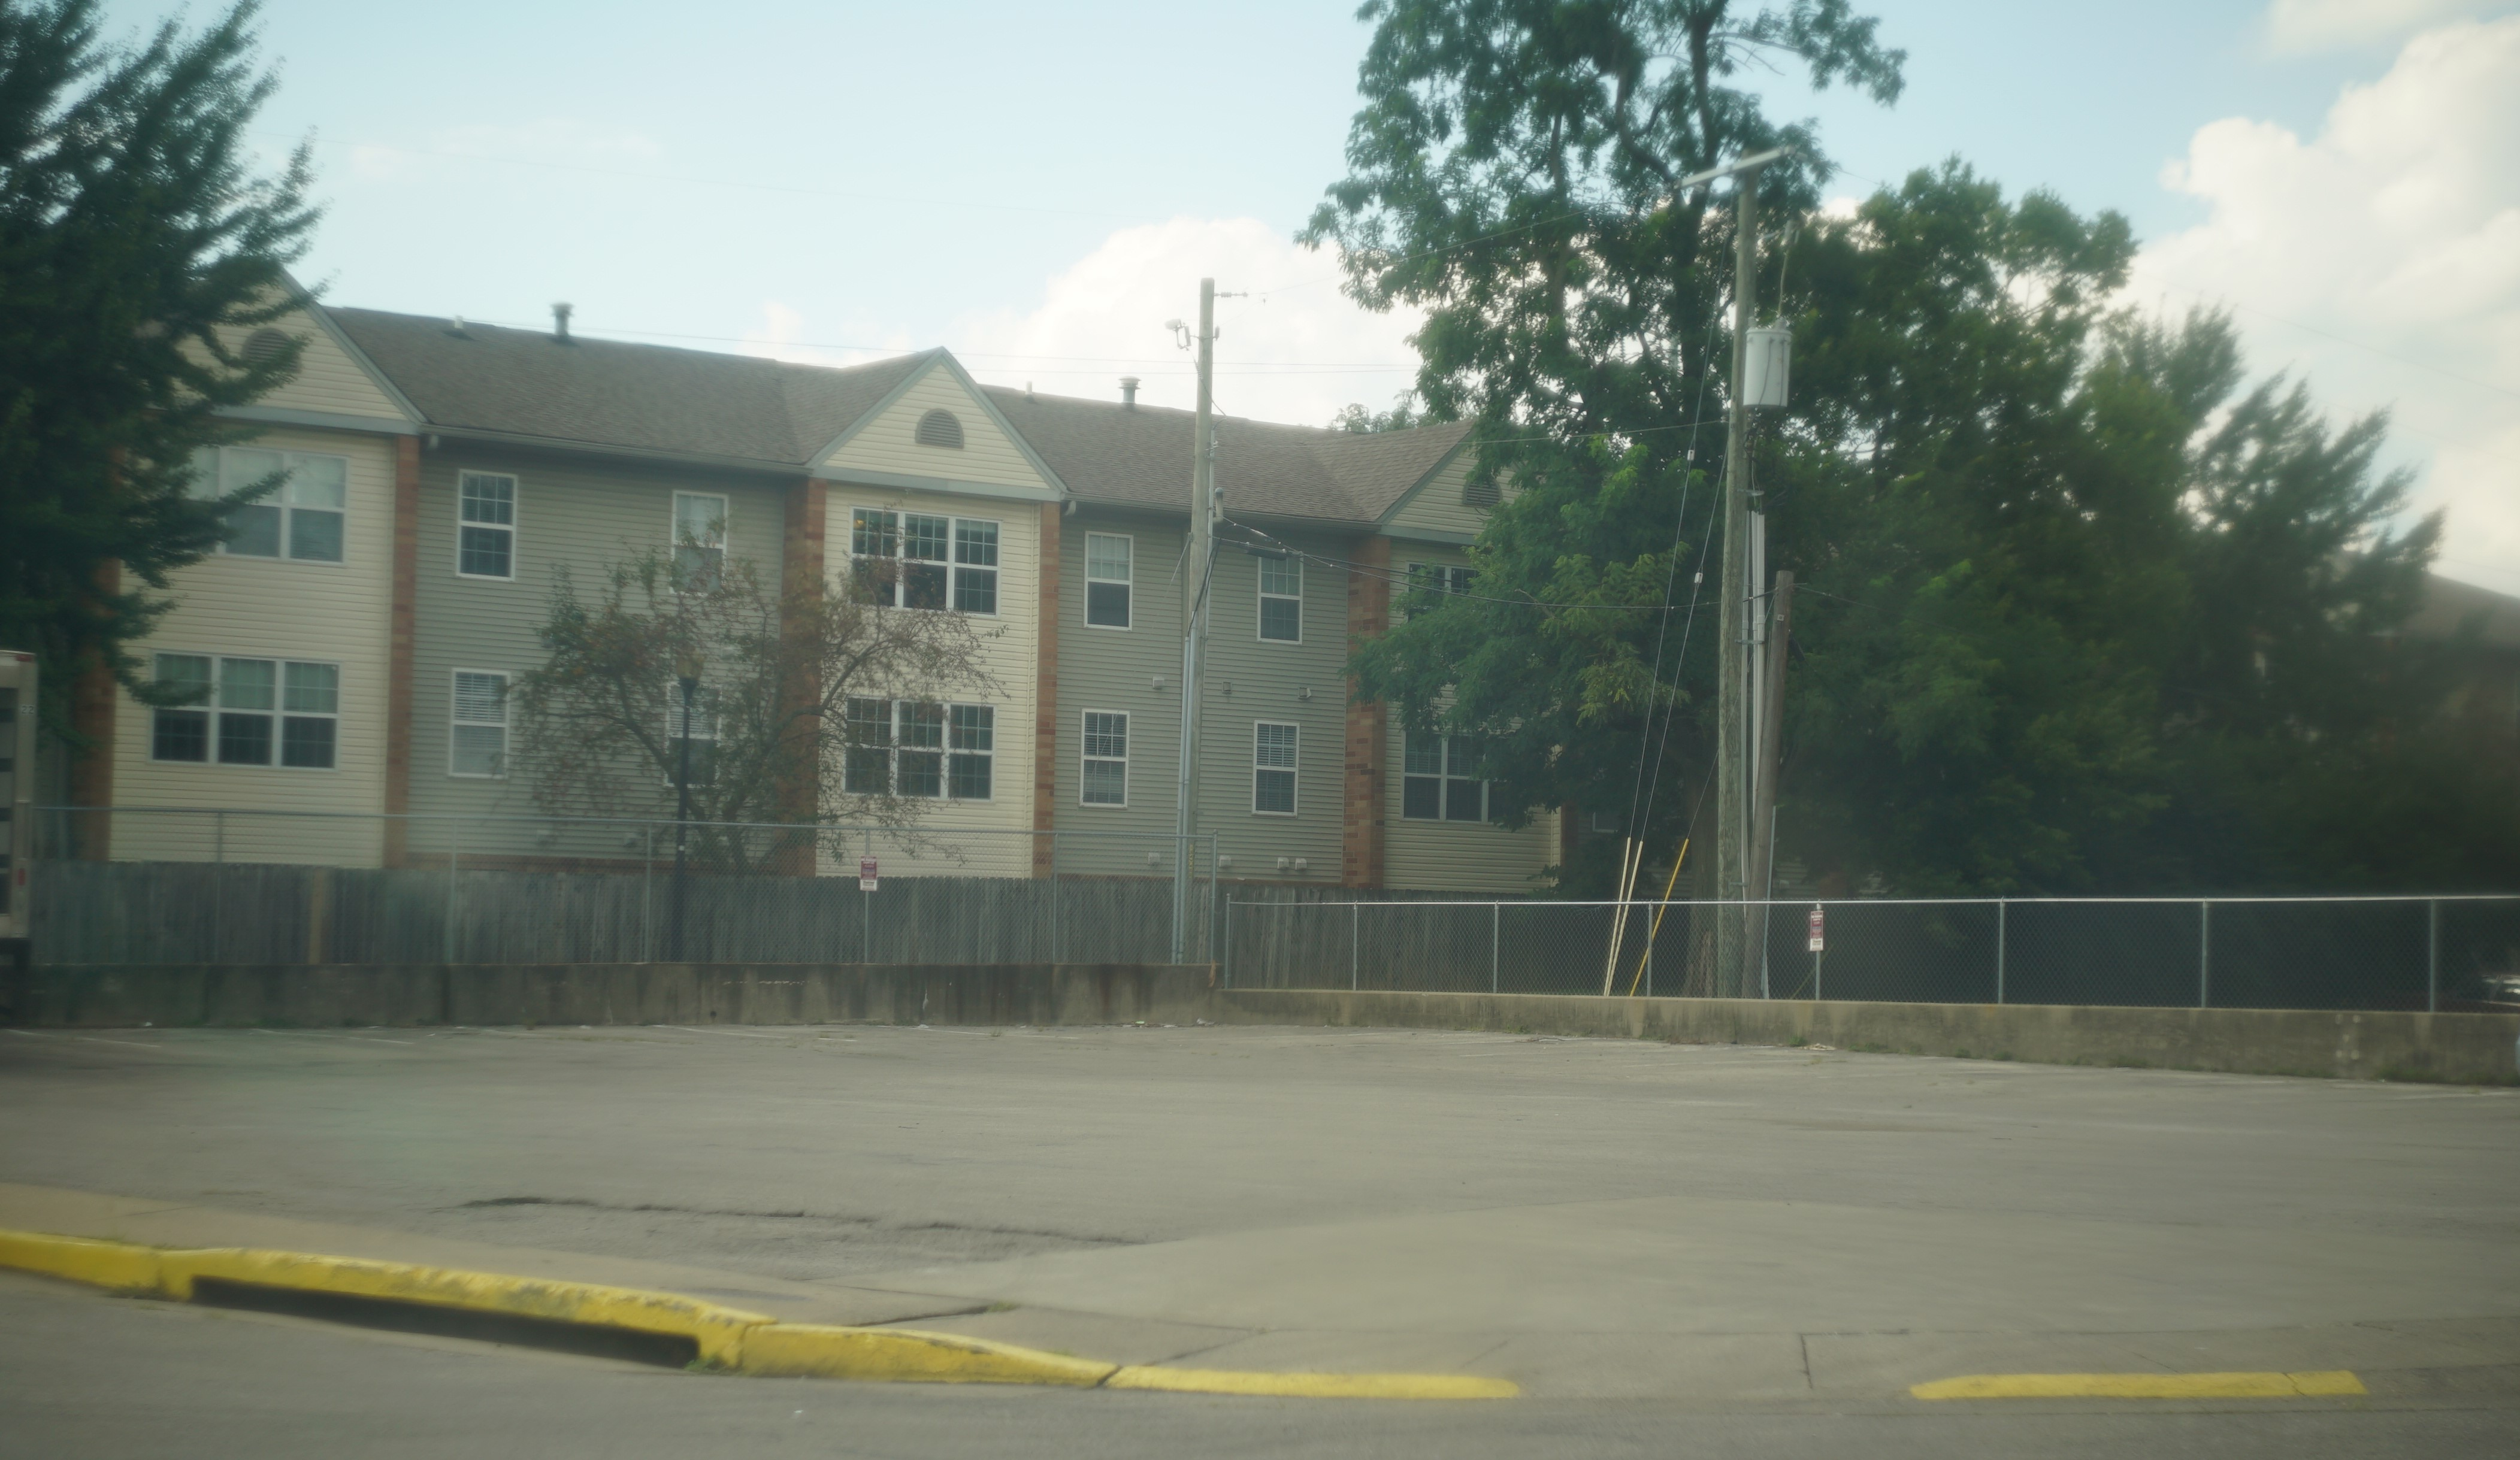 Review of Woodridge Apartments by Anonymous